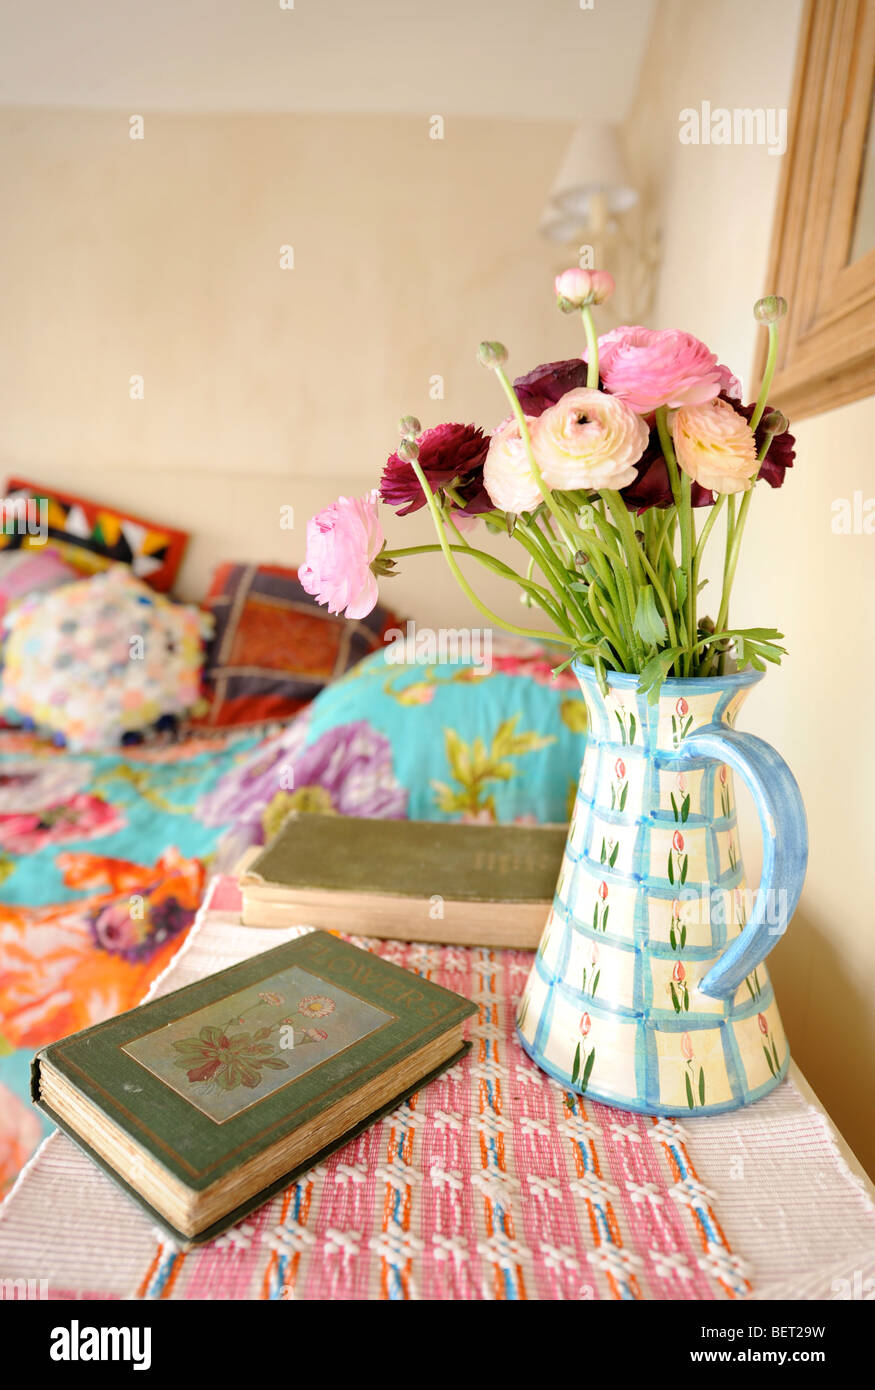 VASE OF FLOWERS IN A COTTAGE INTERIOR UK - Stock Image